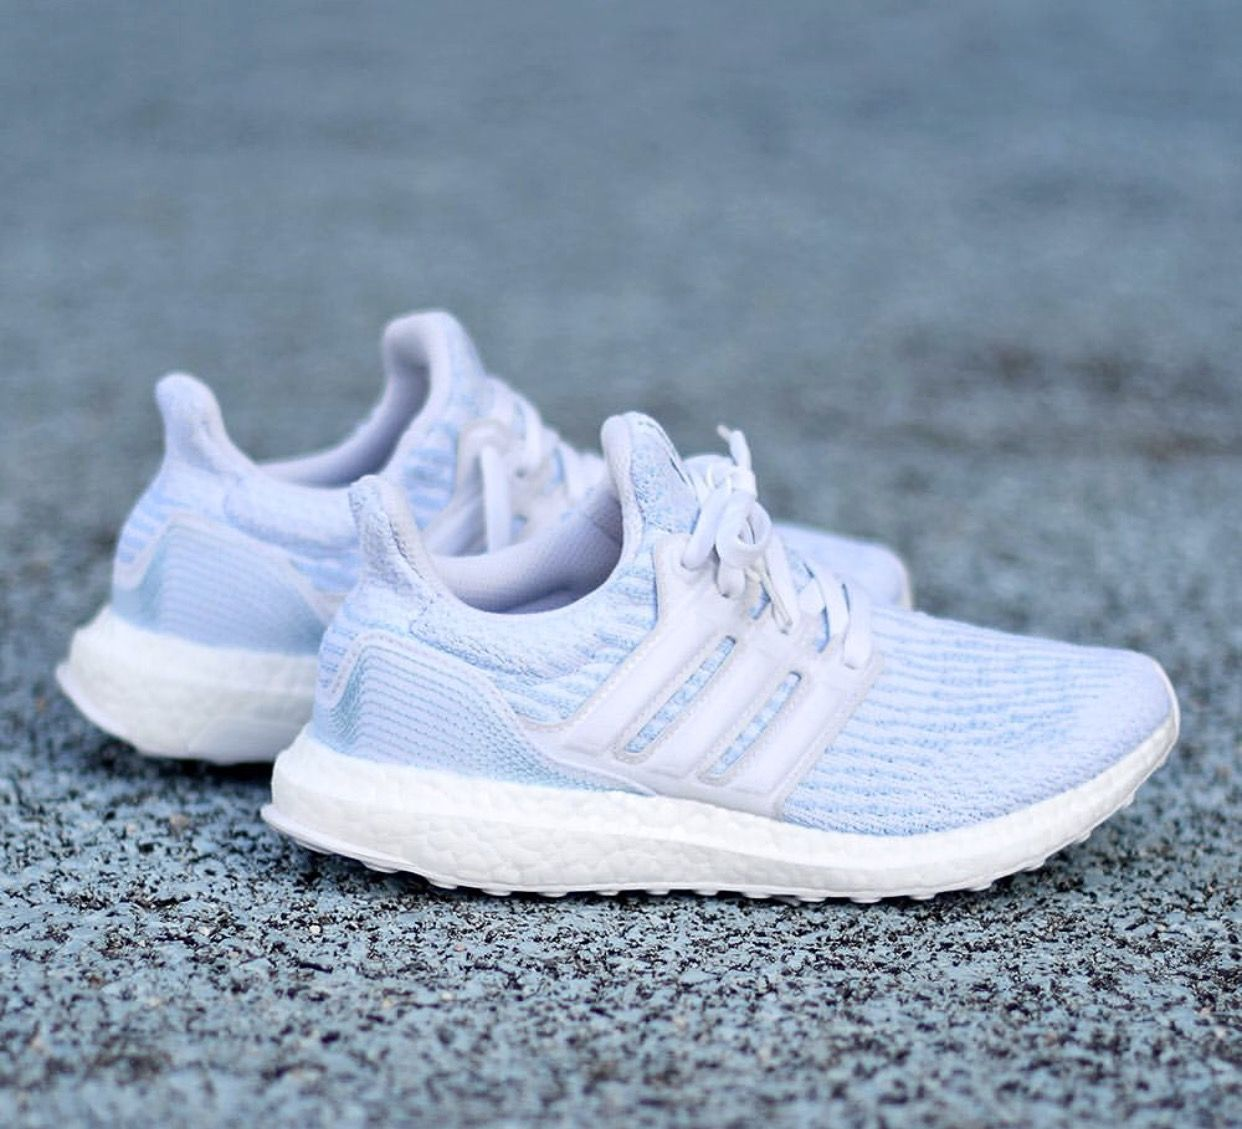 ba0eb758de636 Made from 11 plastic bottles  recycled ocean waste. Adidas x Parley Ultra  Boost 3.0. Release date not yet confirmed.